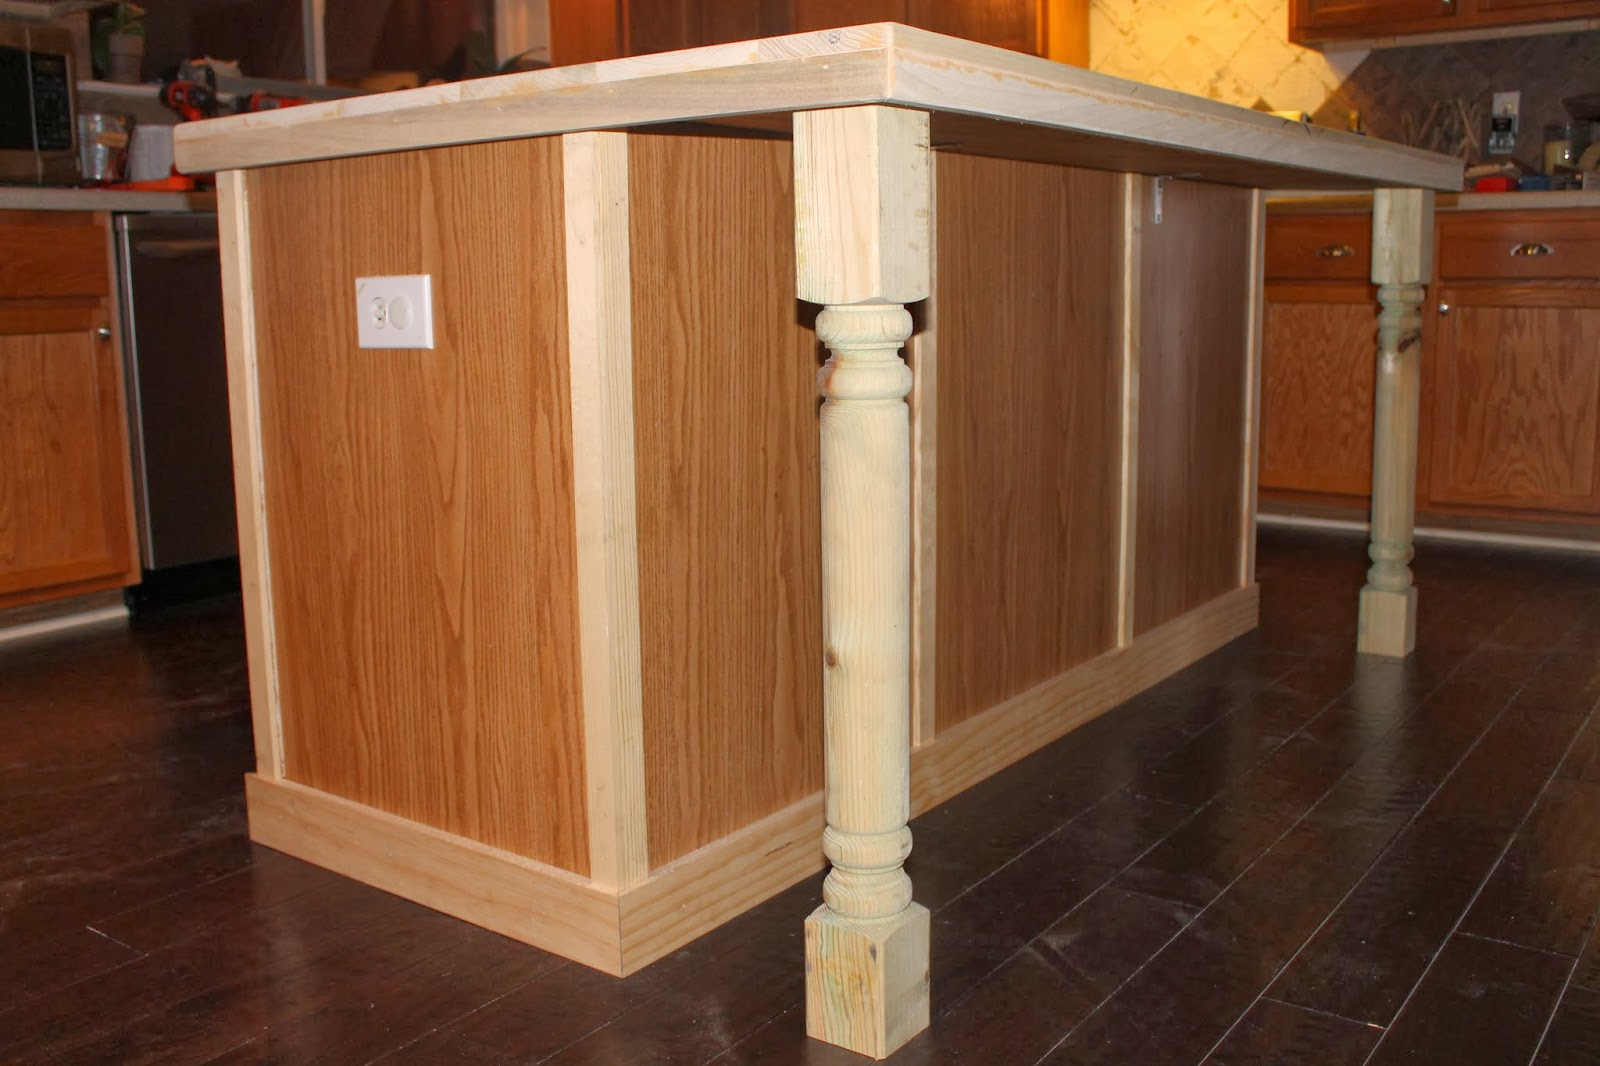 Diy adding legs to kitchen cabinets make your own kitchen for Kitchen cabinets with legs